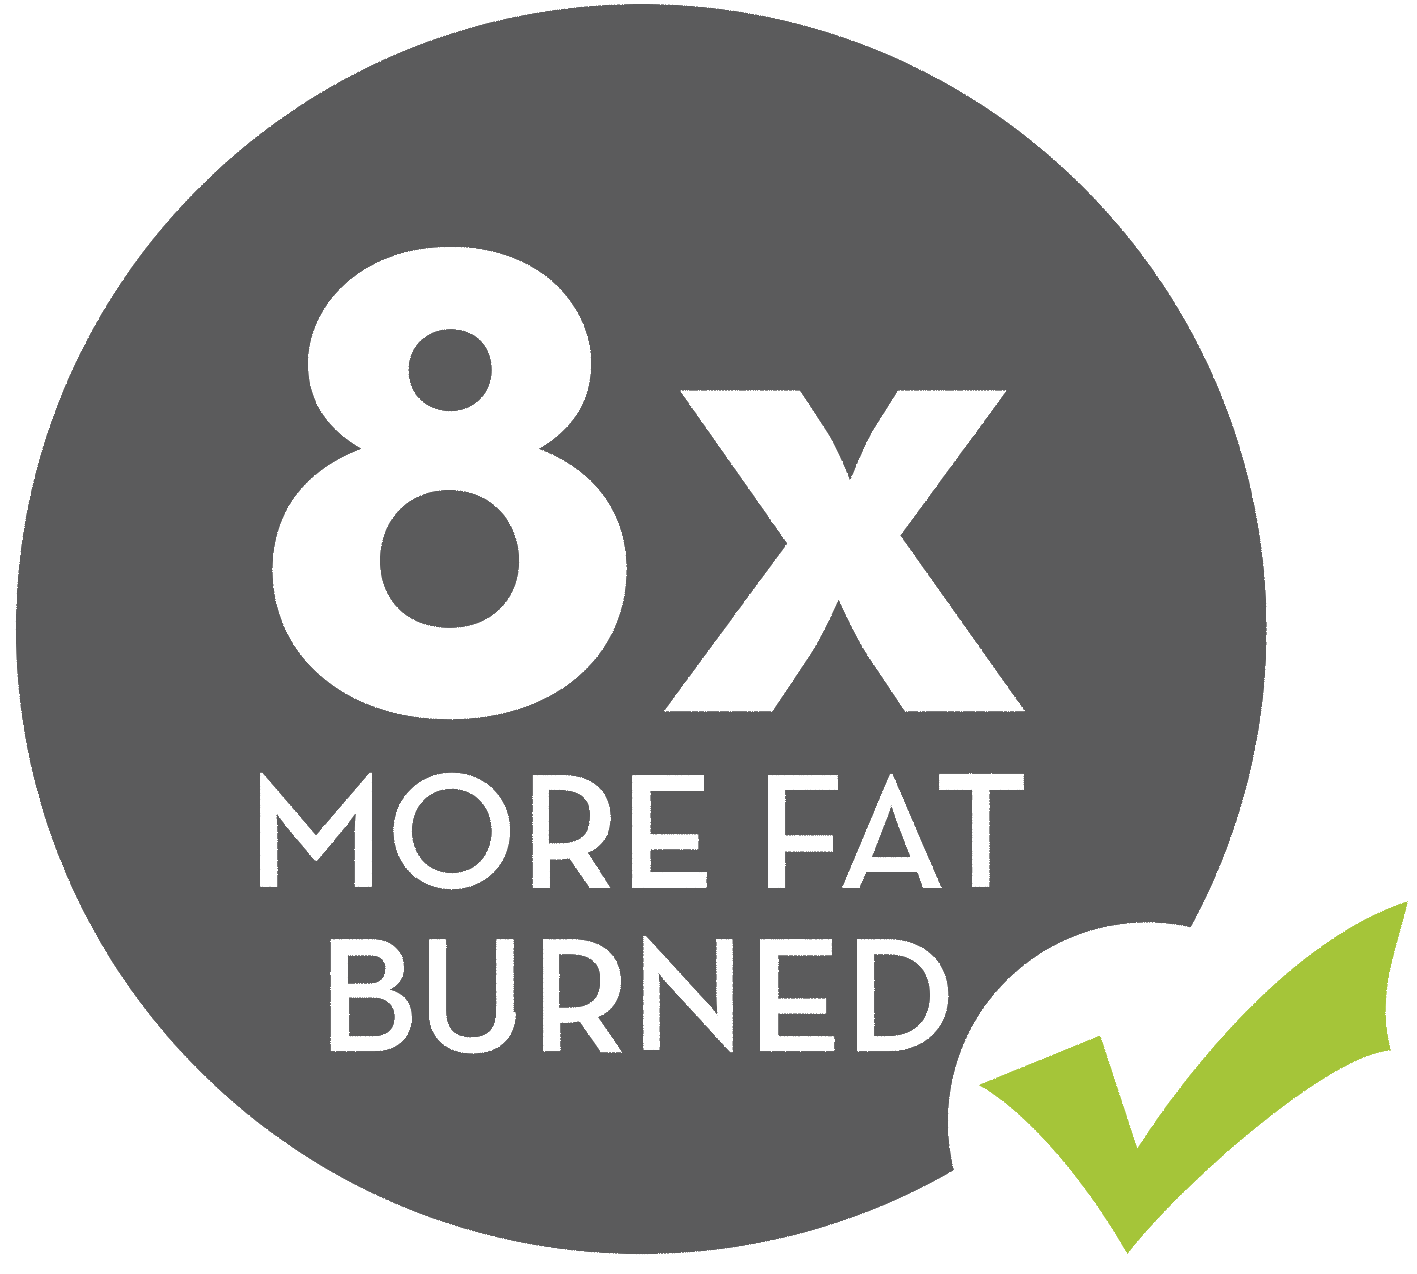 8x More Fat Burned